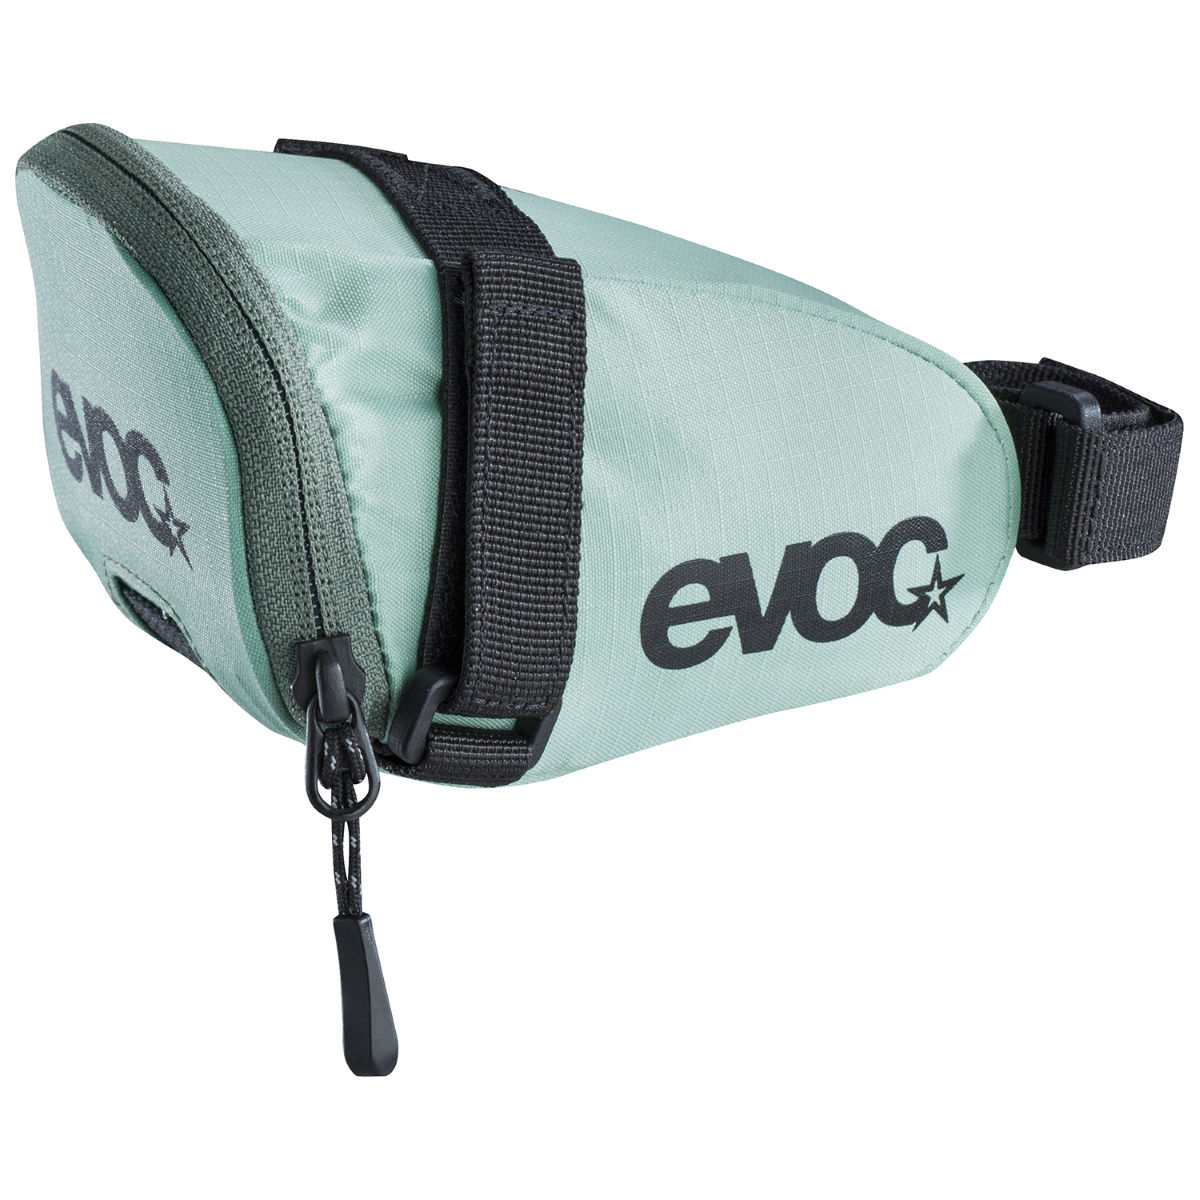 Evoc saddle bag saddle bags light petrol 2017 evoc100602306